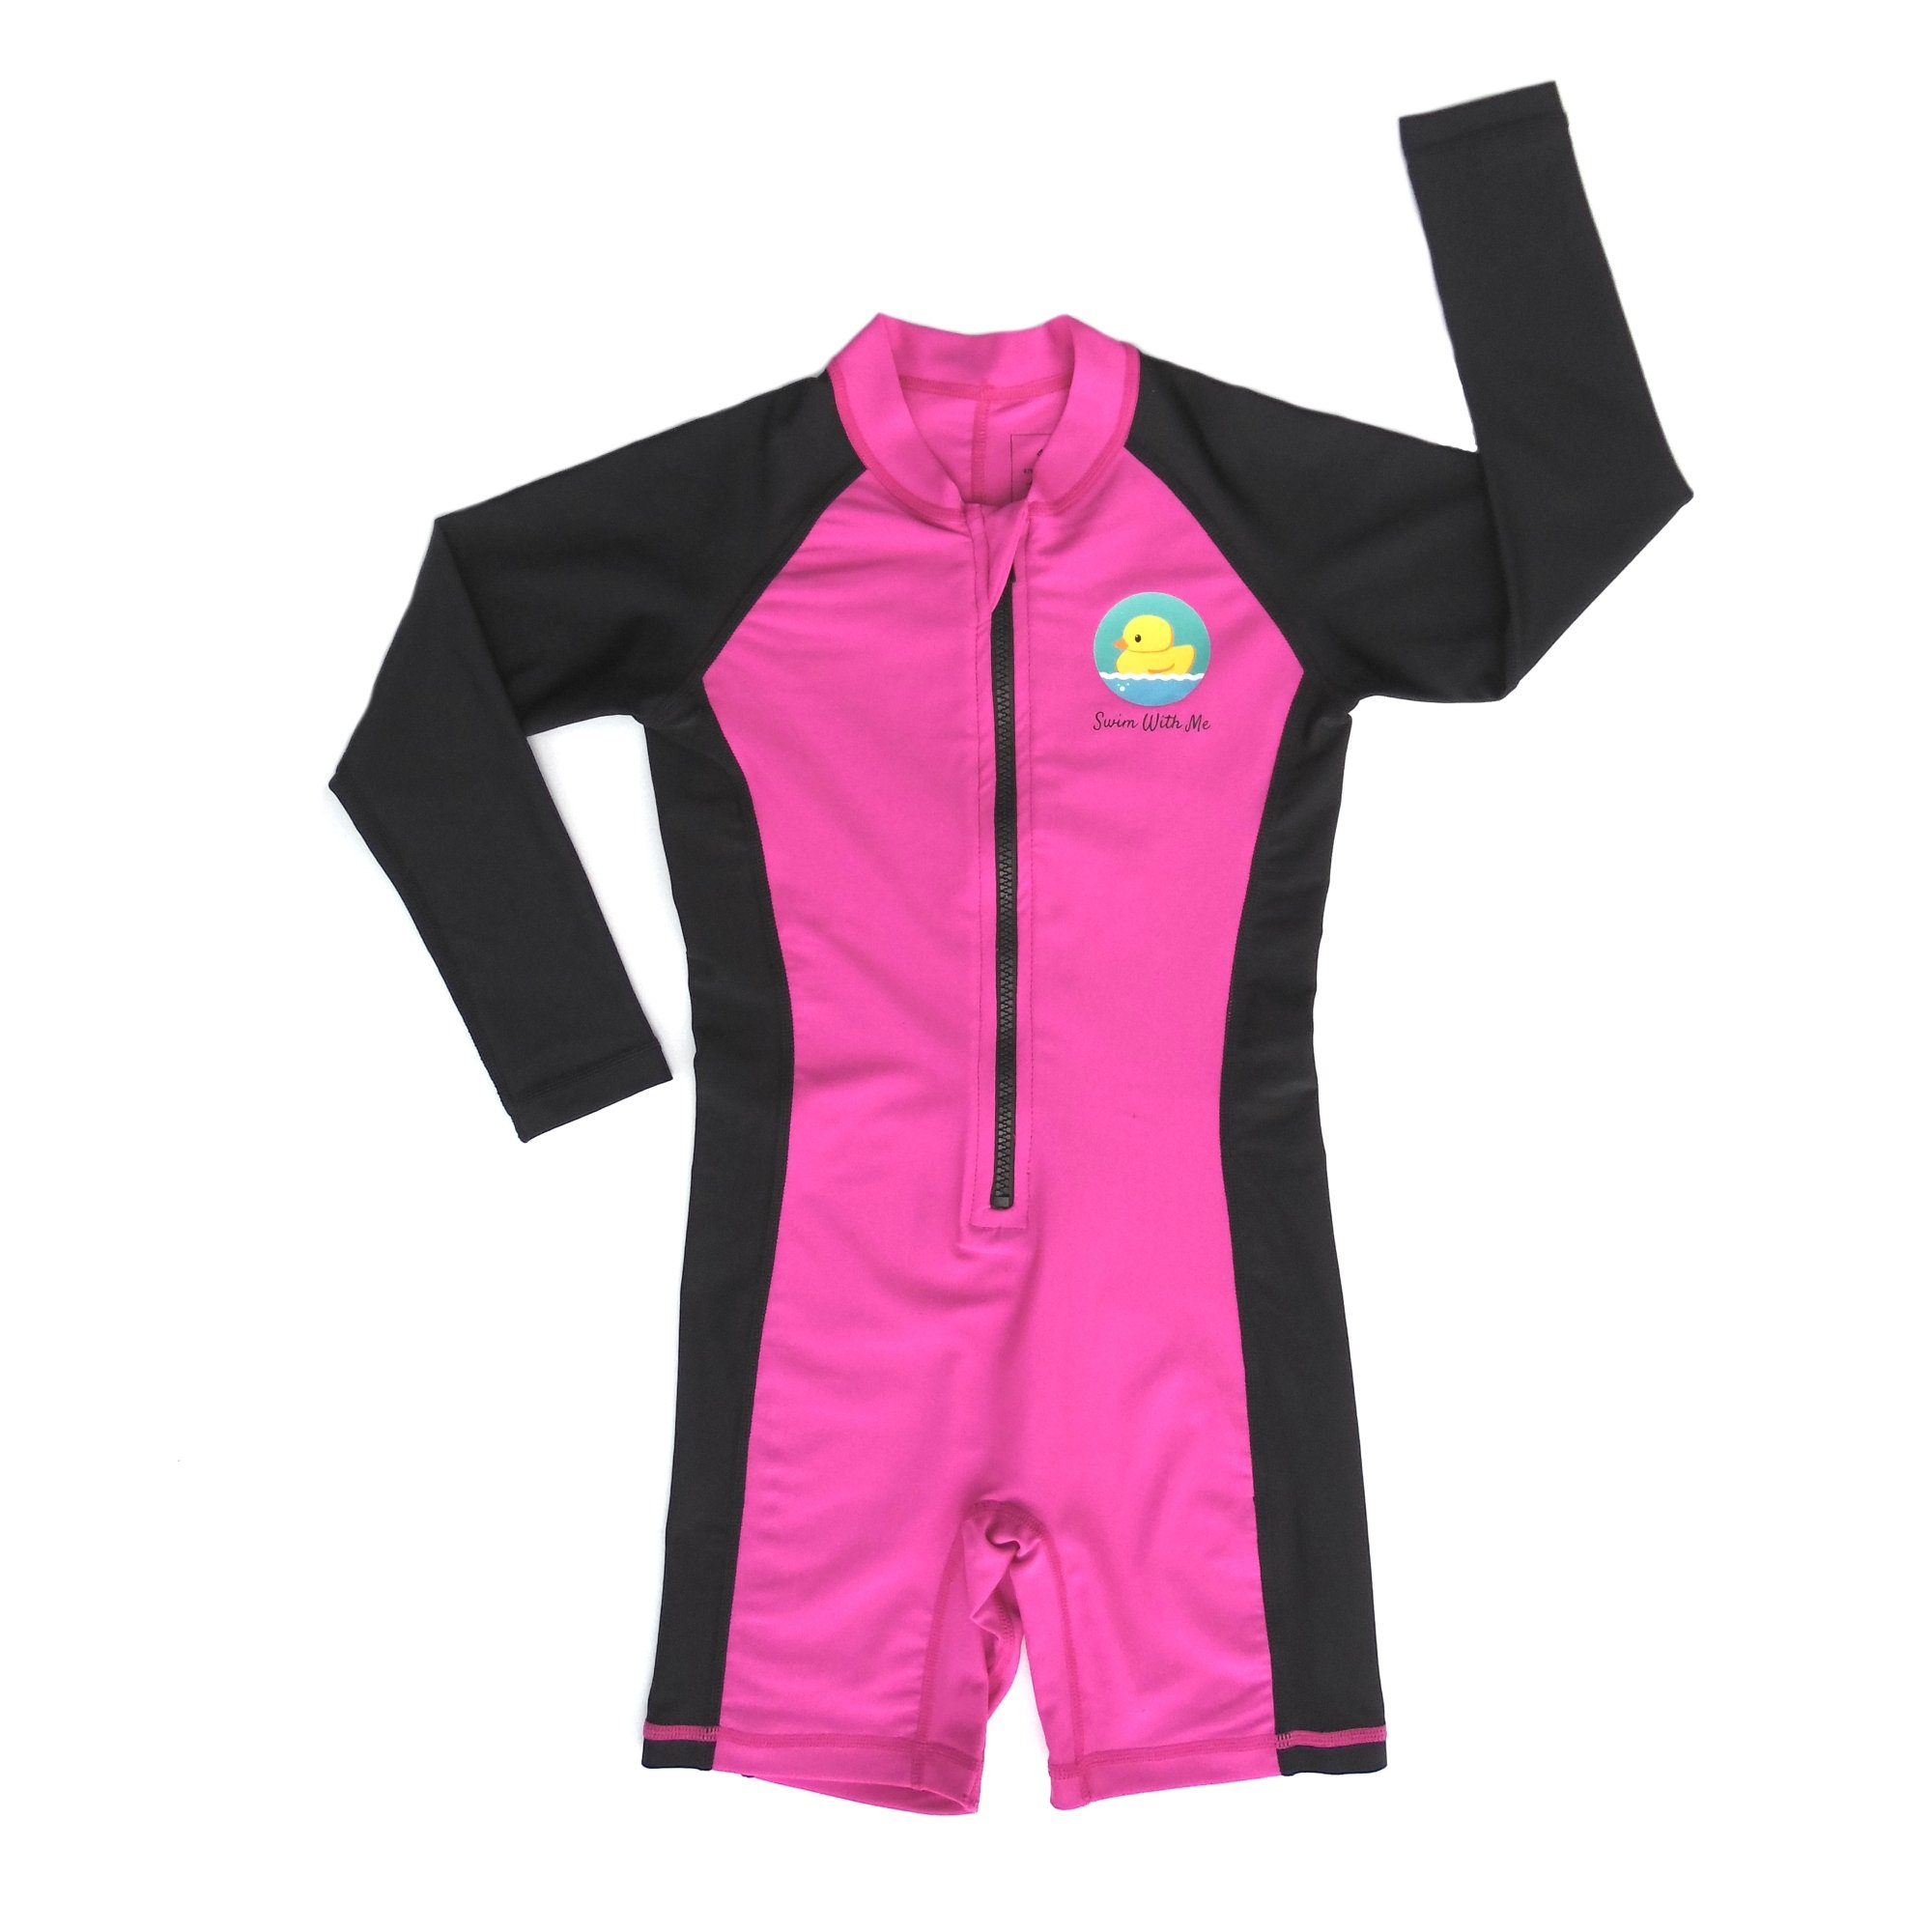 Swim with Me- SPF 50+ Total Sun Protection Swimsuit for Infant, Baby, Toddler, and Kids! (Magenta, 3 Years)